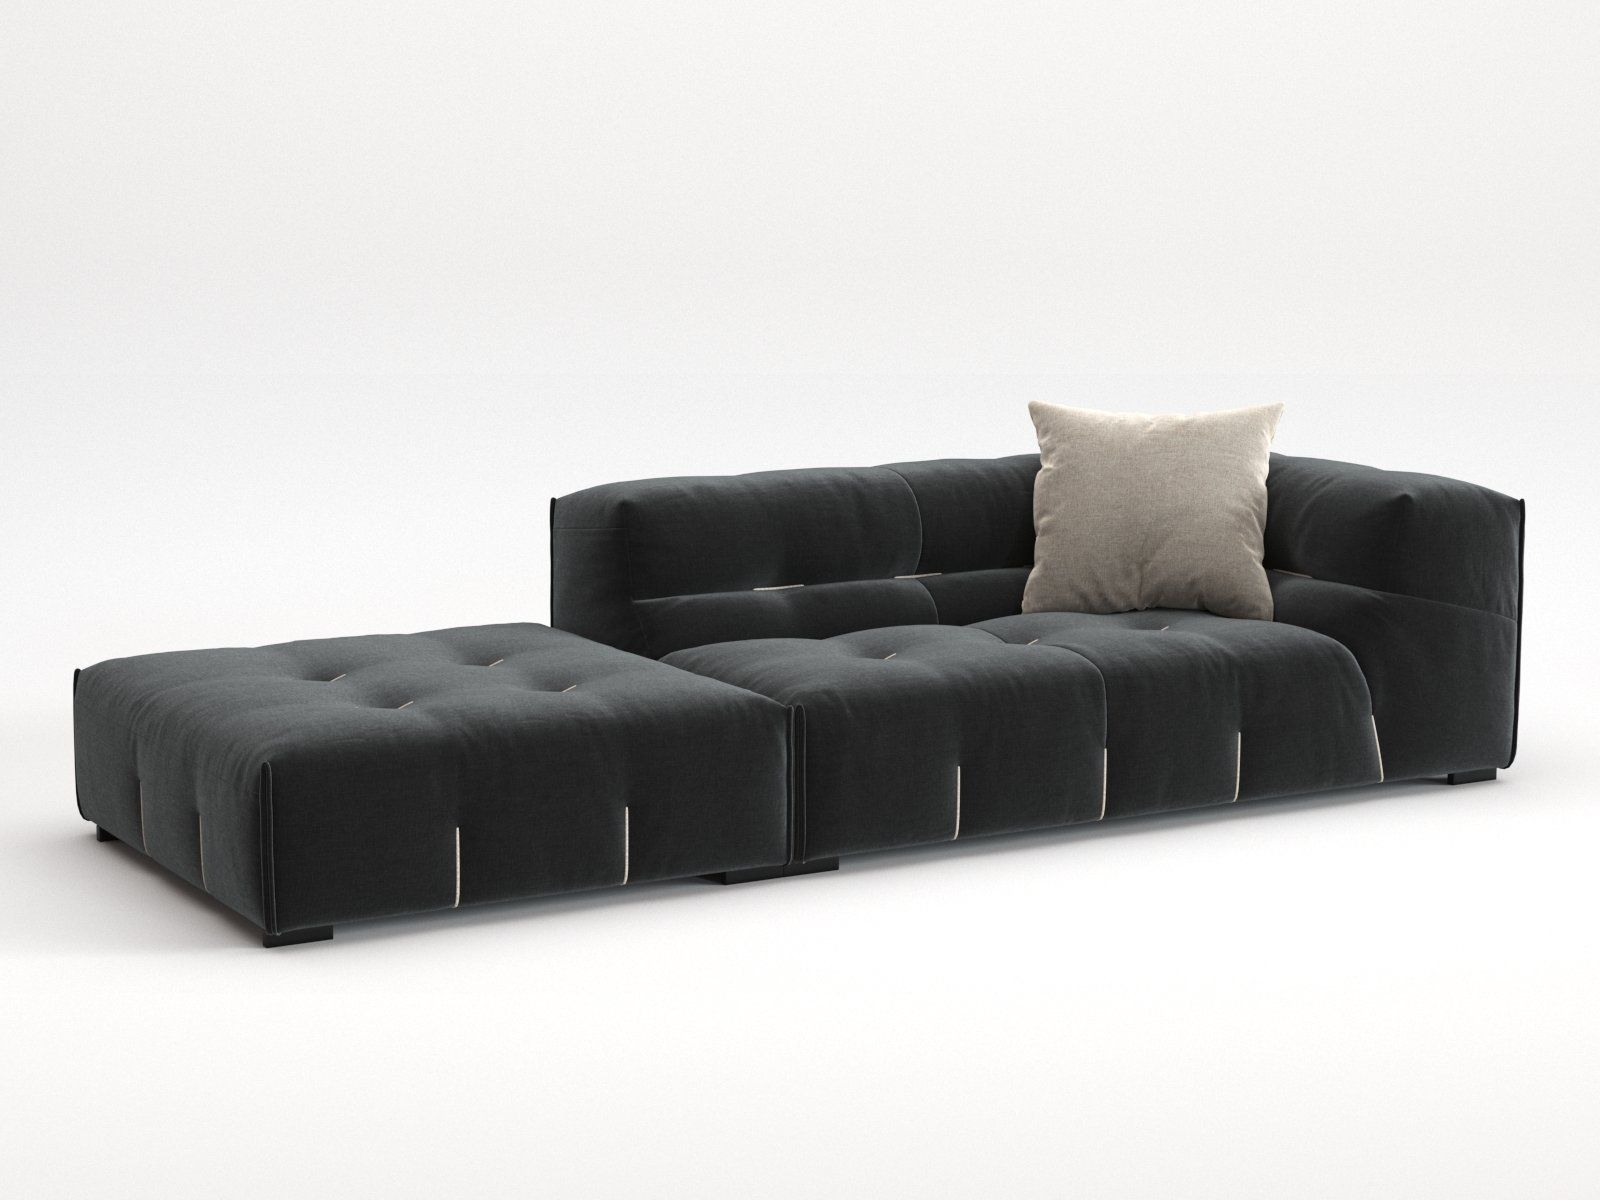 Tufty Too Comp02 3d Model By Design Connected Sectional Sofa Lobby Furniture Design